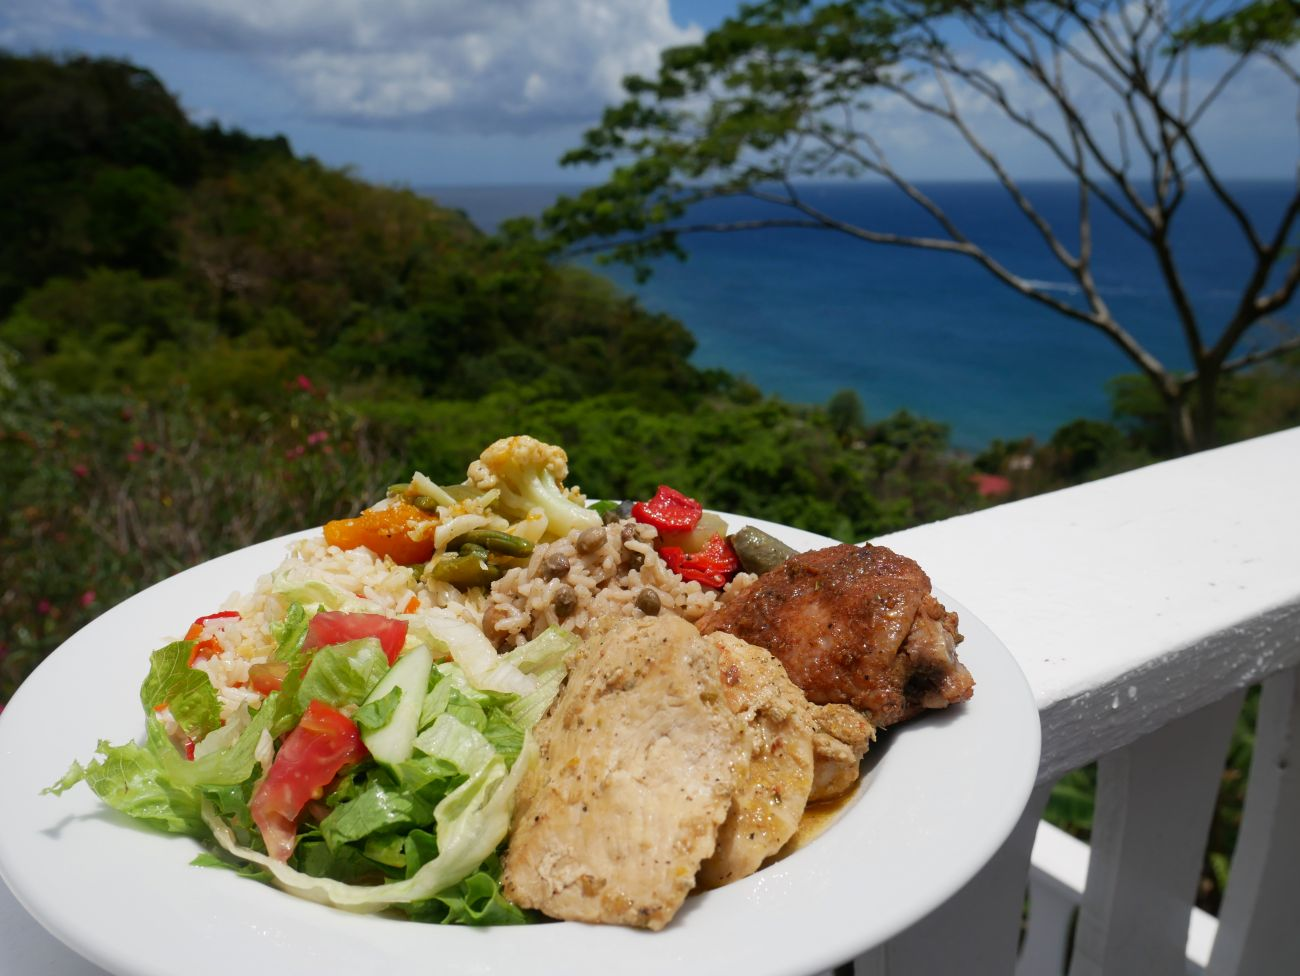 Jerk chicken, rice n'peas, salad, with the Caribbean sea in the background